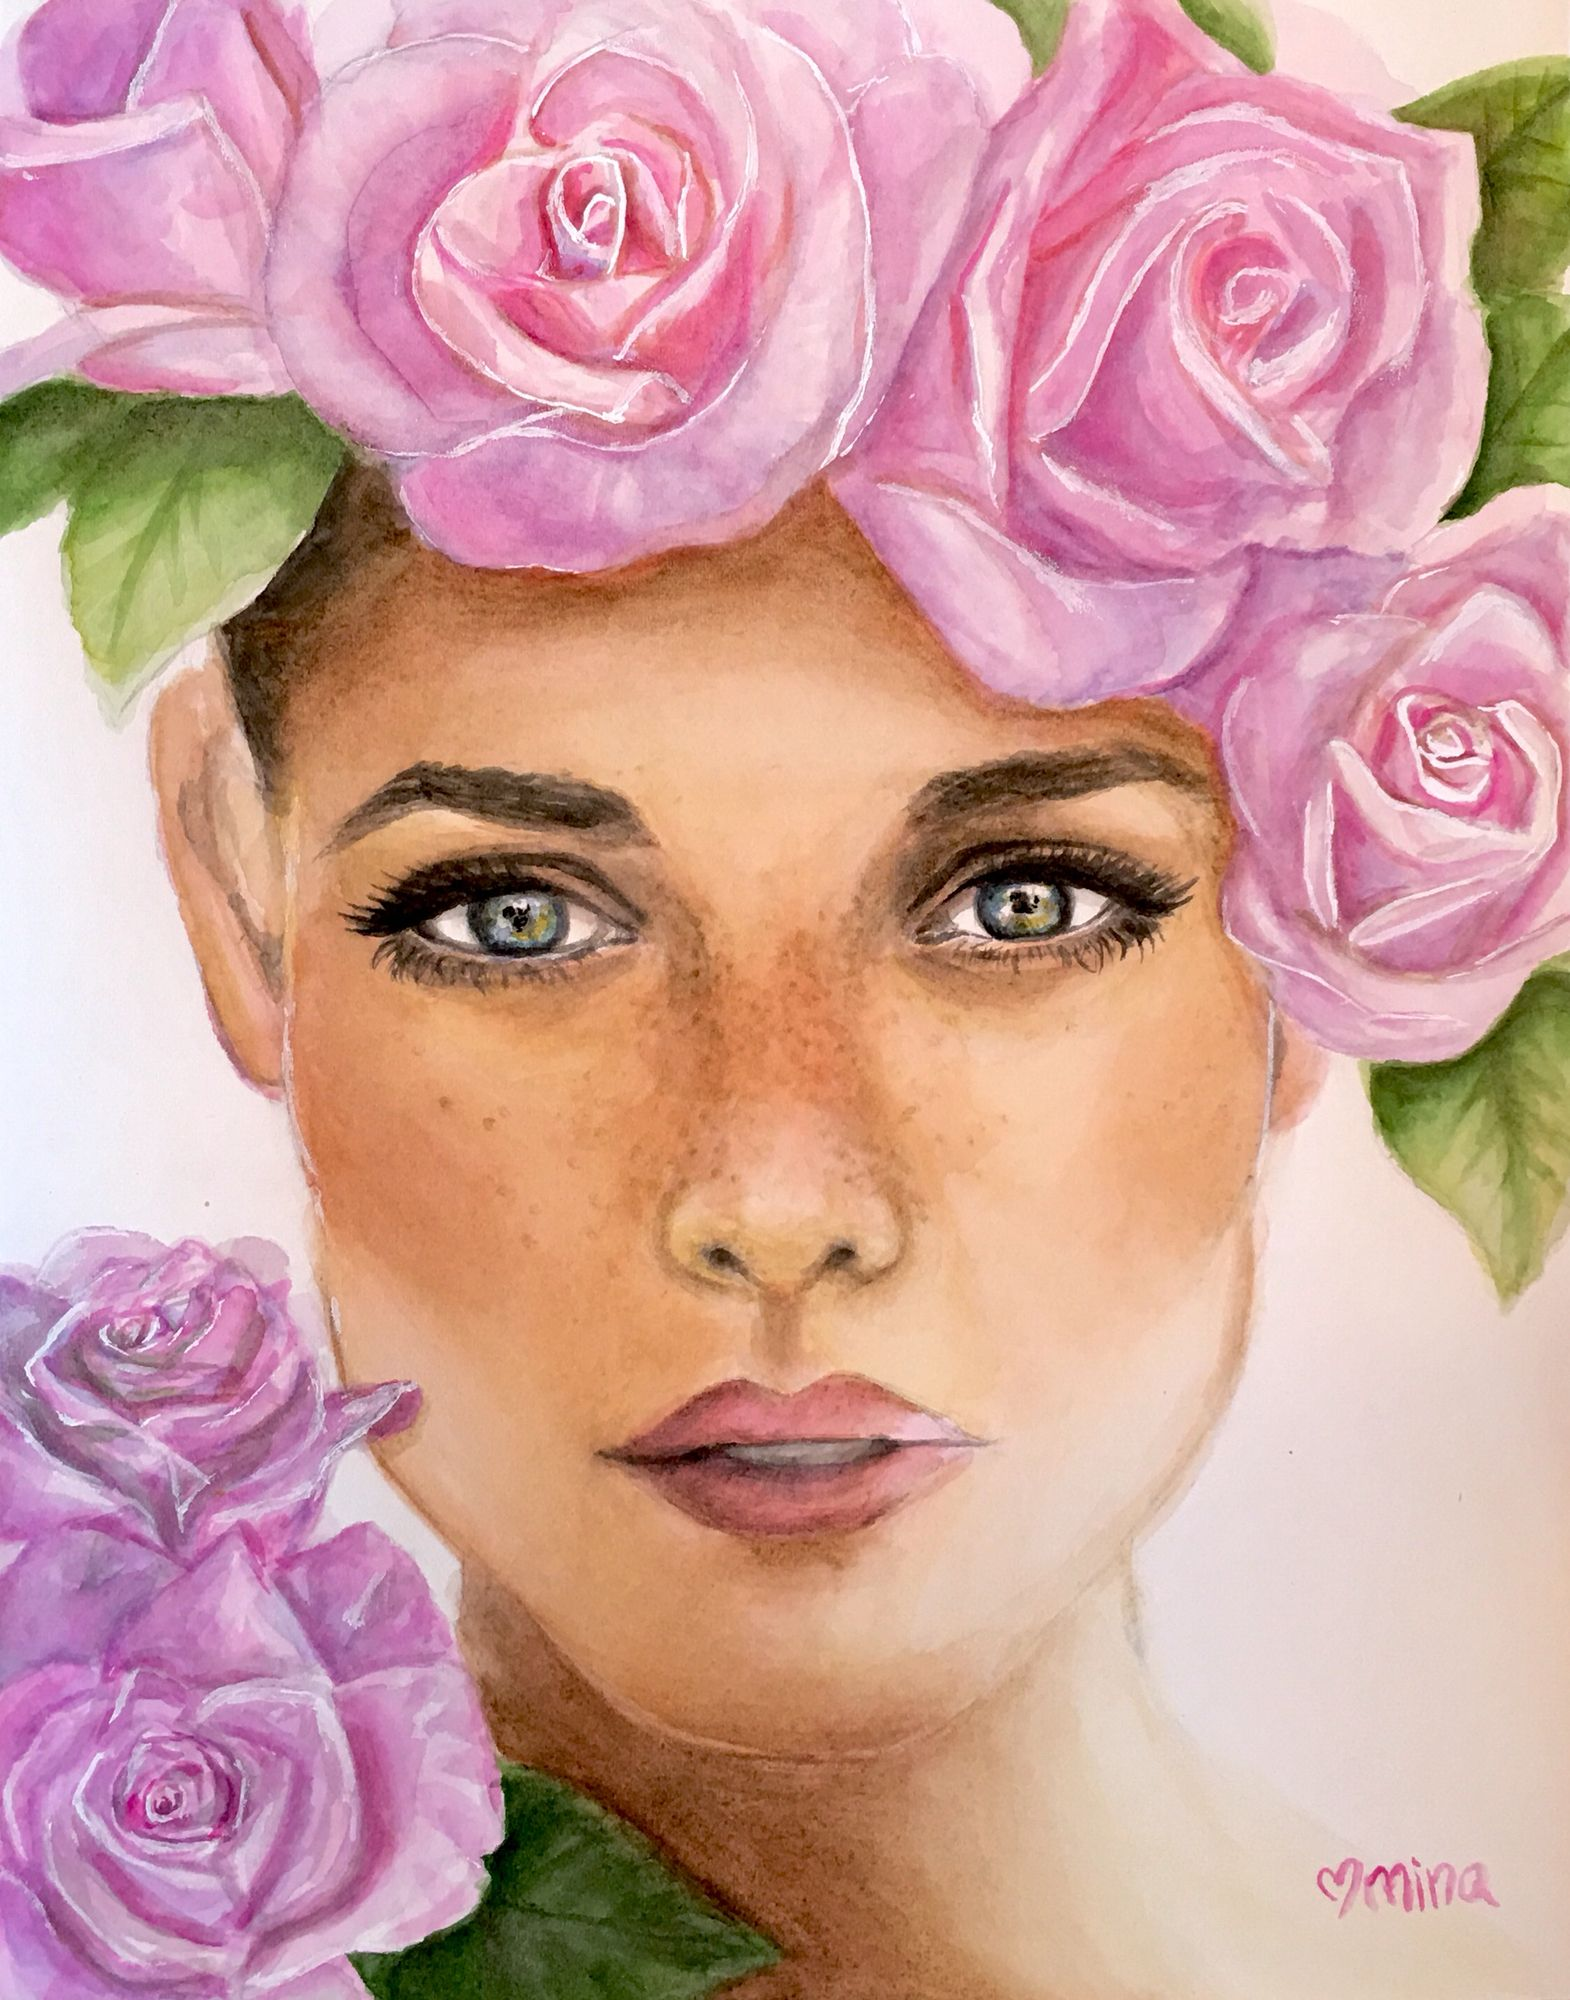 8x10 Watercolor Portrait Roses Woman Face Glow Art By Mina Fordyce